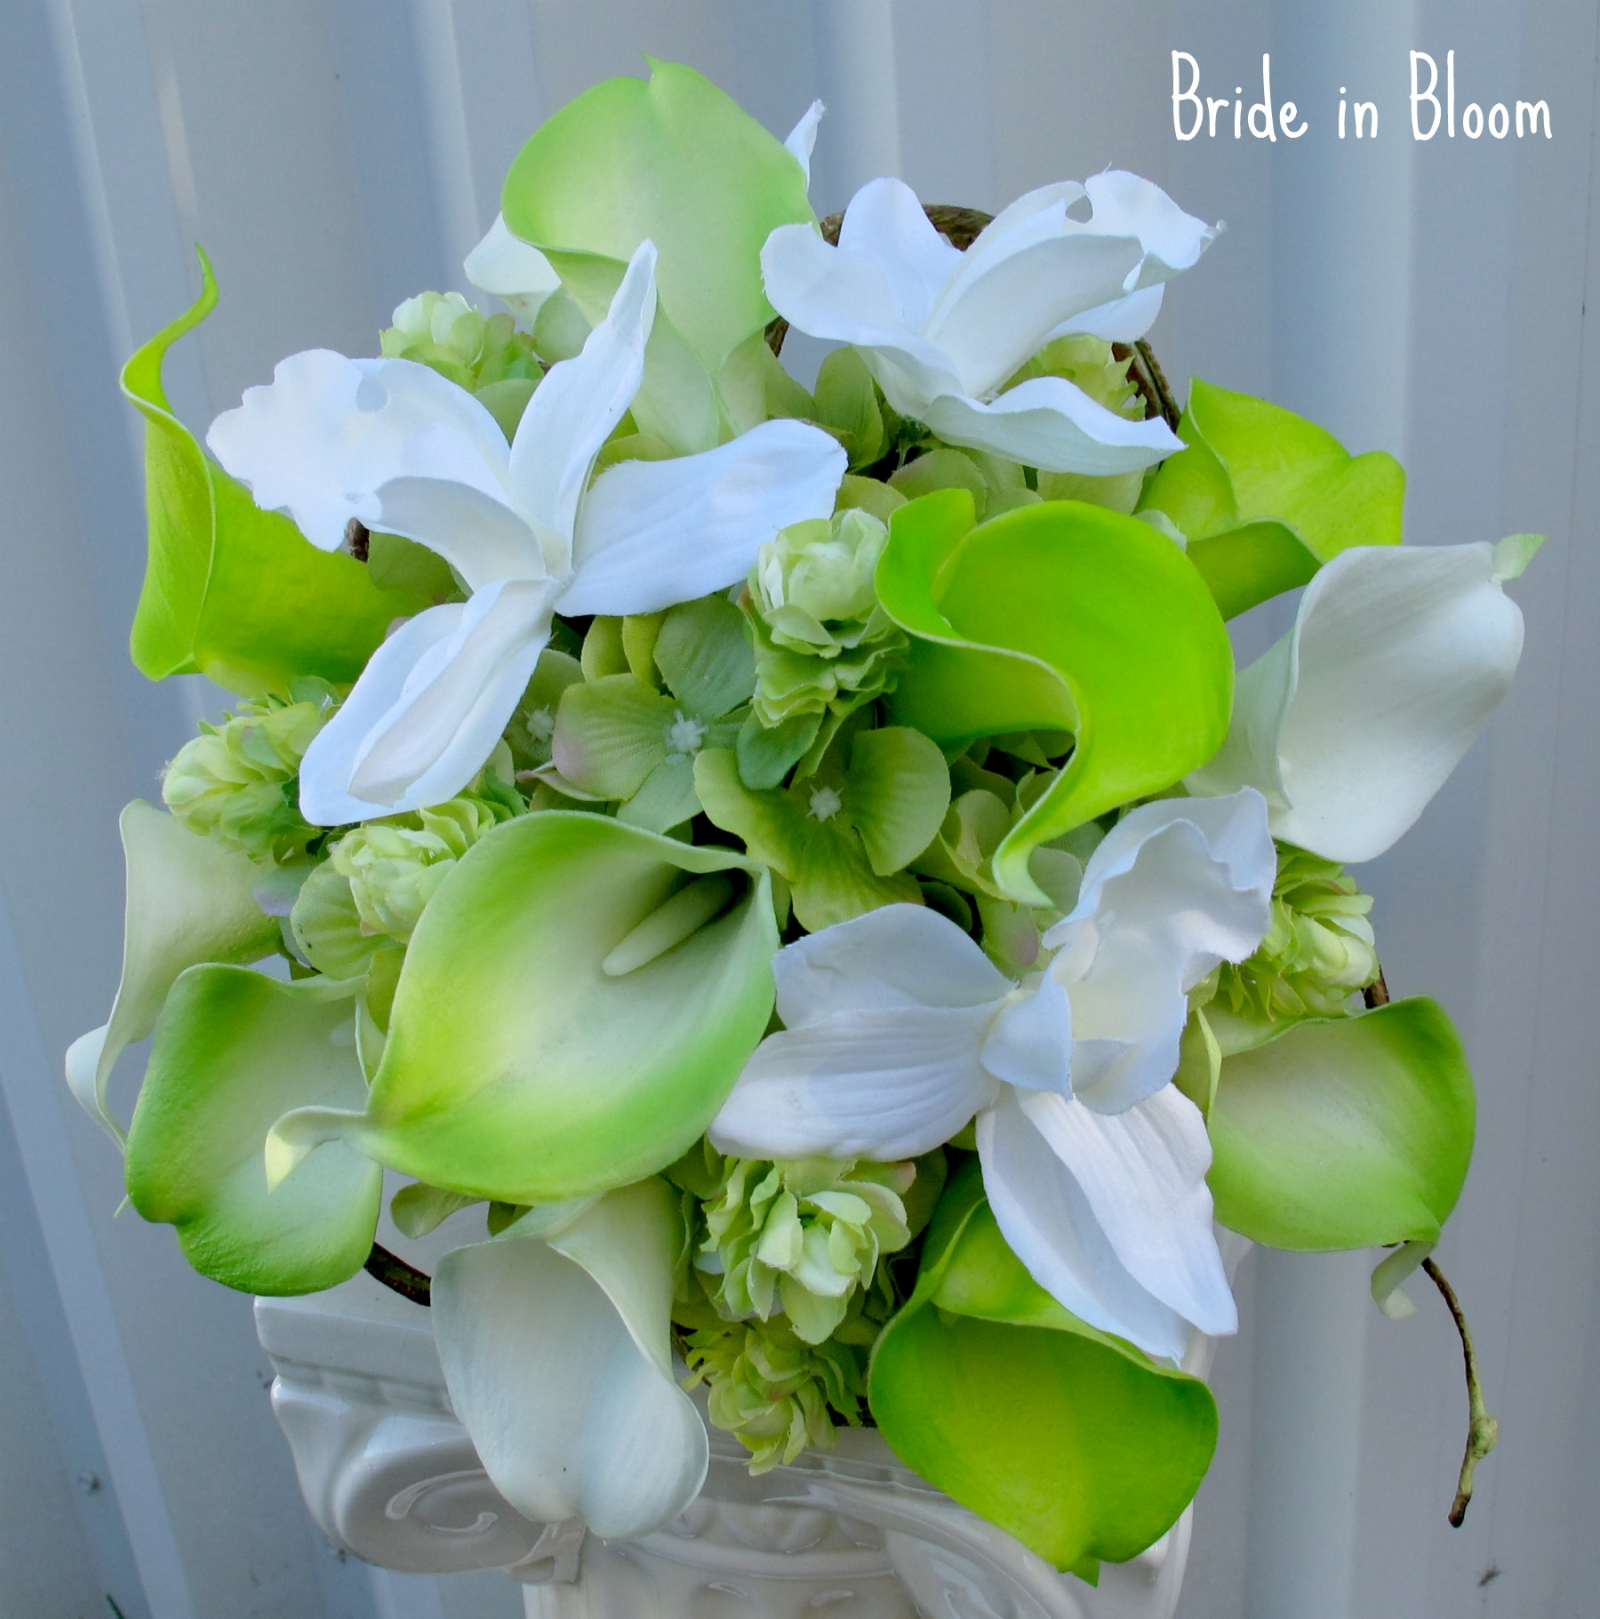 Lime green white calla lily orchid bridal bouquet bride in bloom lime green white calla lily orchid bridal bouquet silk wedding flowers mightylinksfo